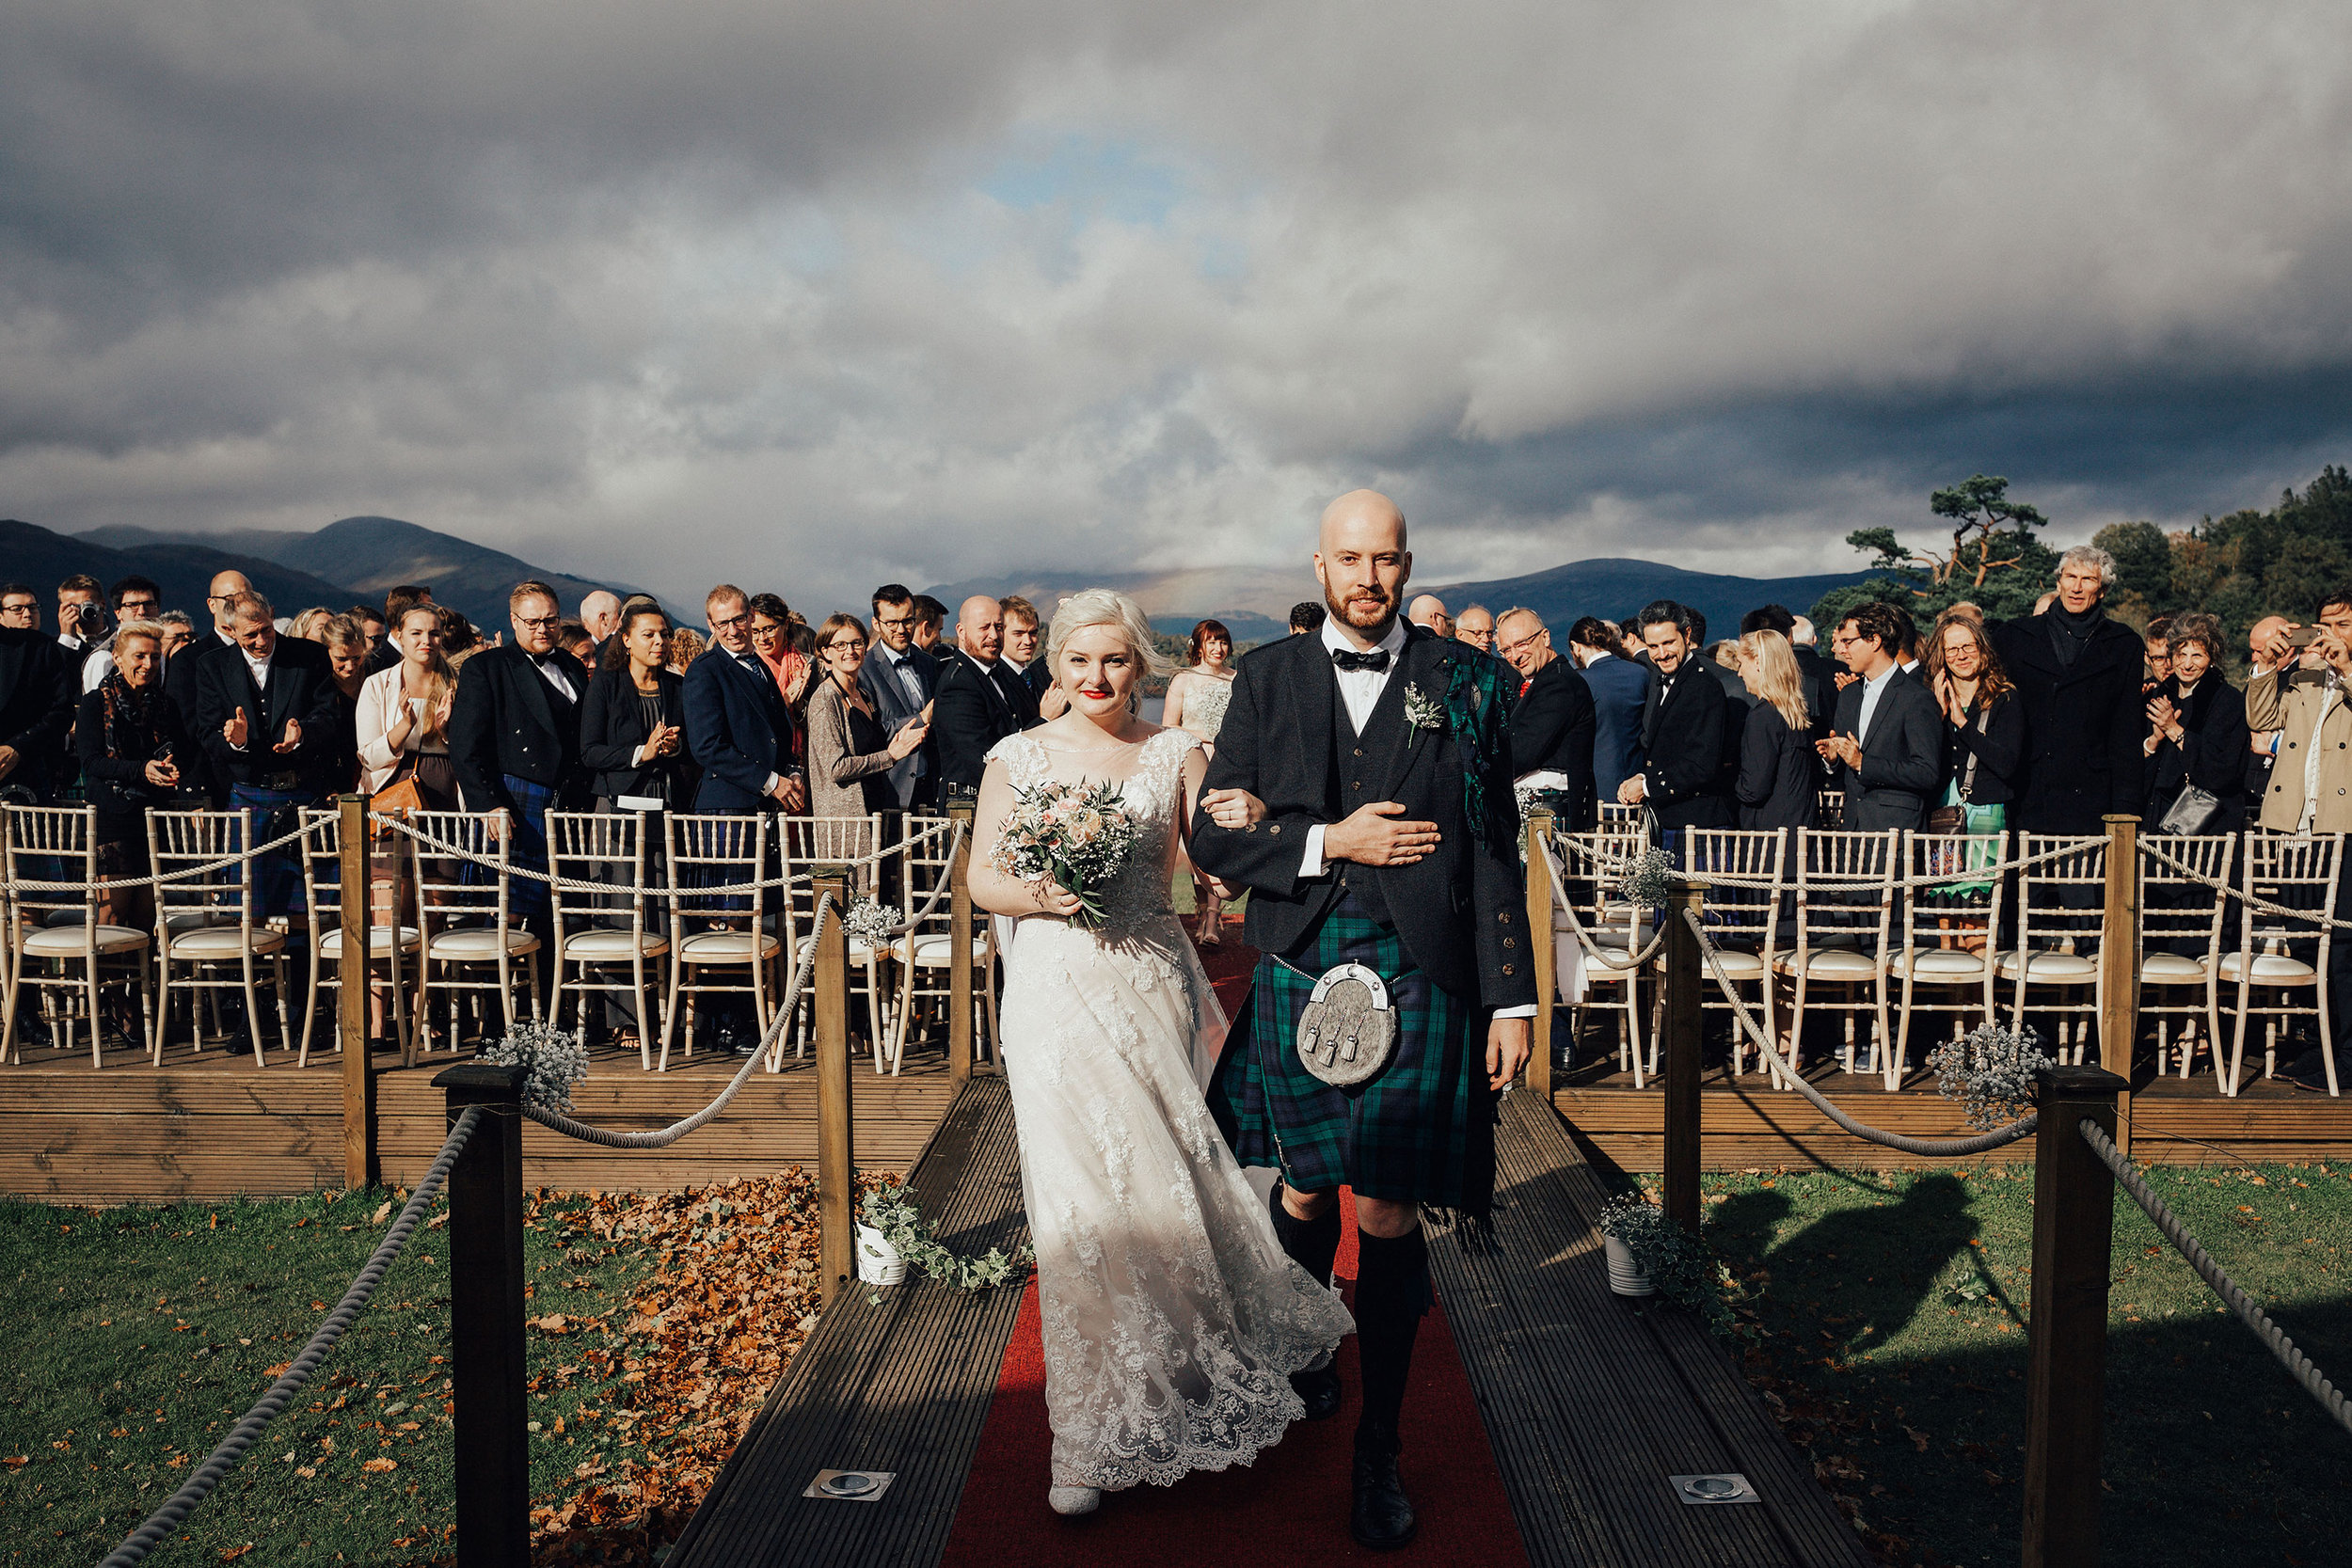 BOTURICH_CASTLE_WEDDING_PHOTOGRAPHER_PJ_PHILLIPS_PHOTOGRAPHY_88.jpg